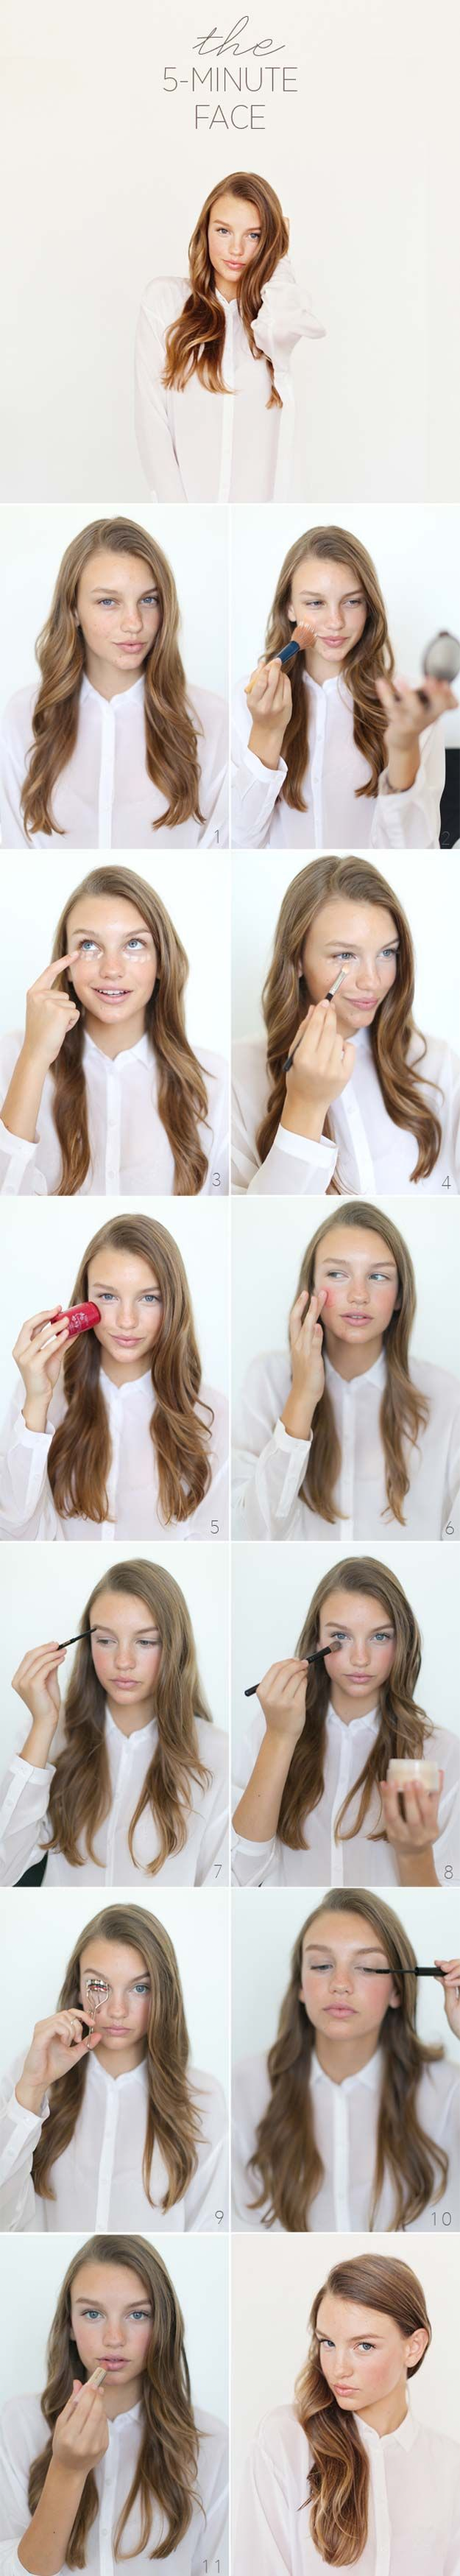 Best Makeup Tutorials for Teens -The 5 Minute Face Beauty Tutorial - Easy Makeup...